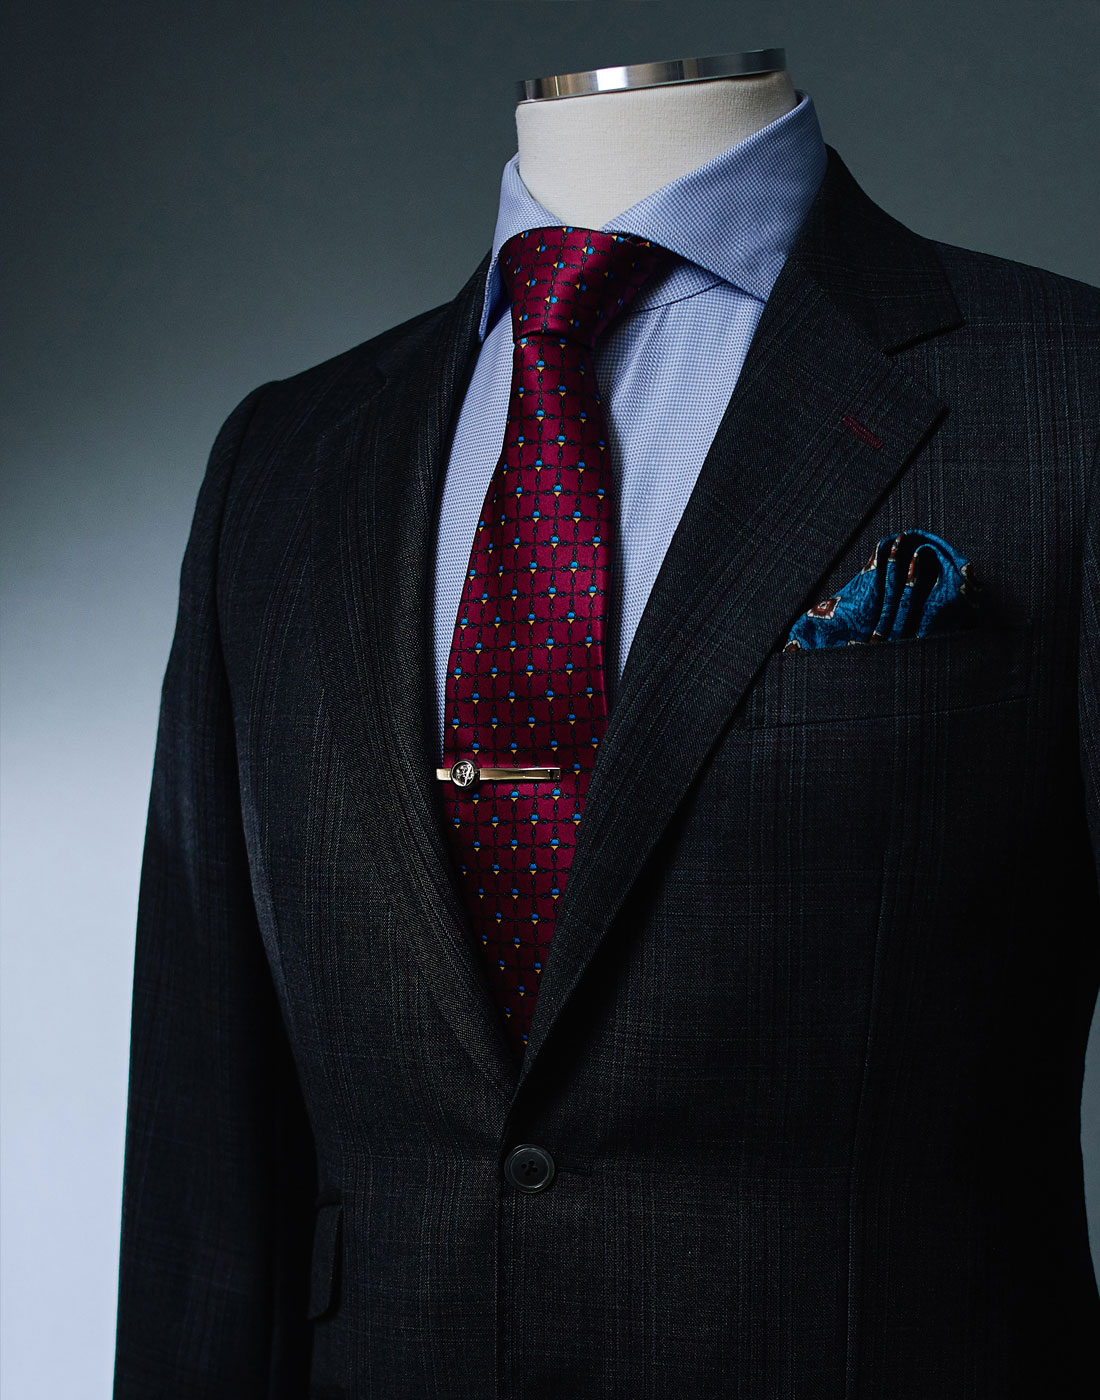 Men's bespoke suit jacket with a red tie